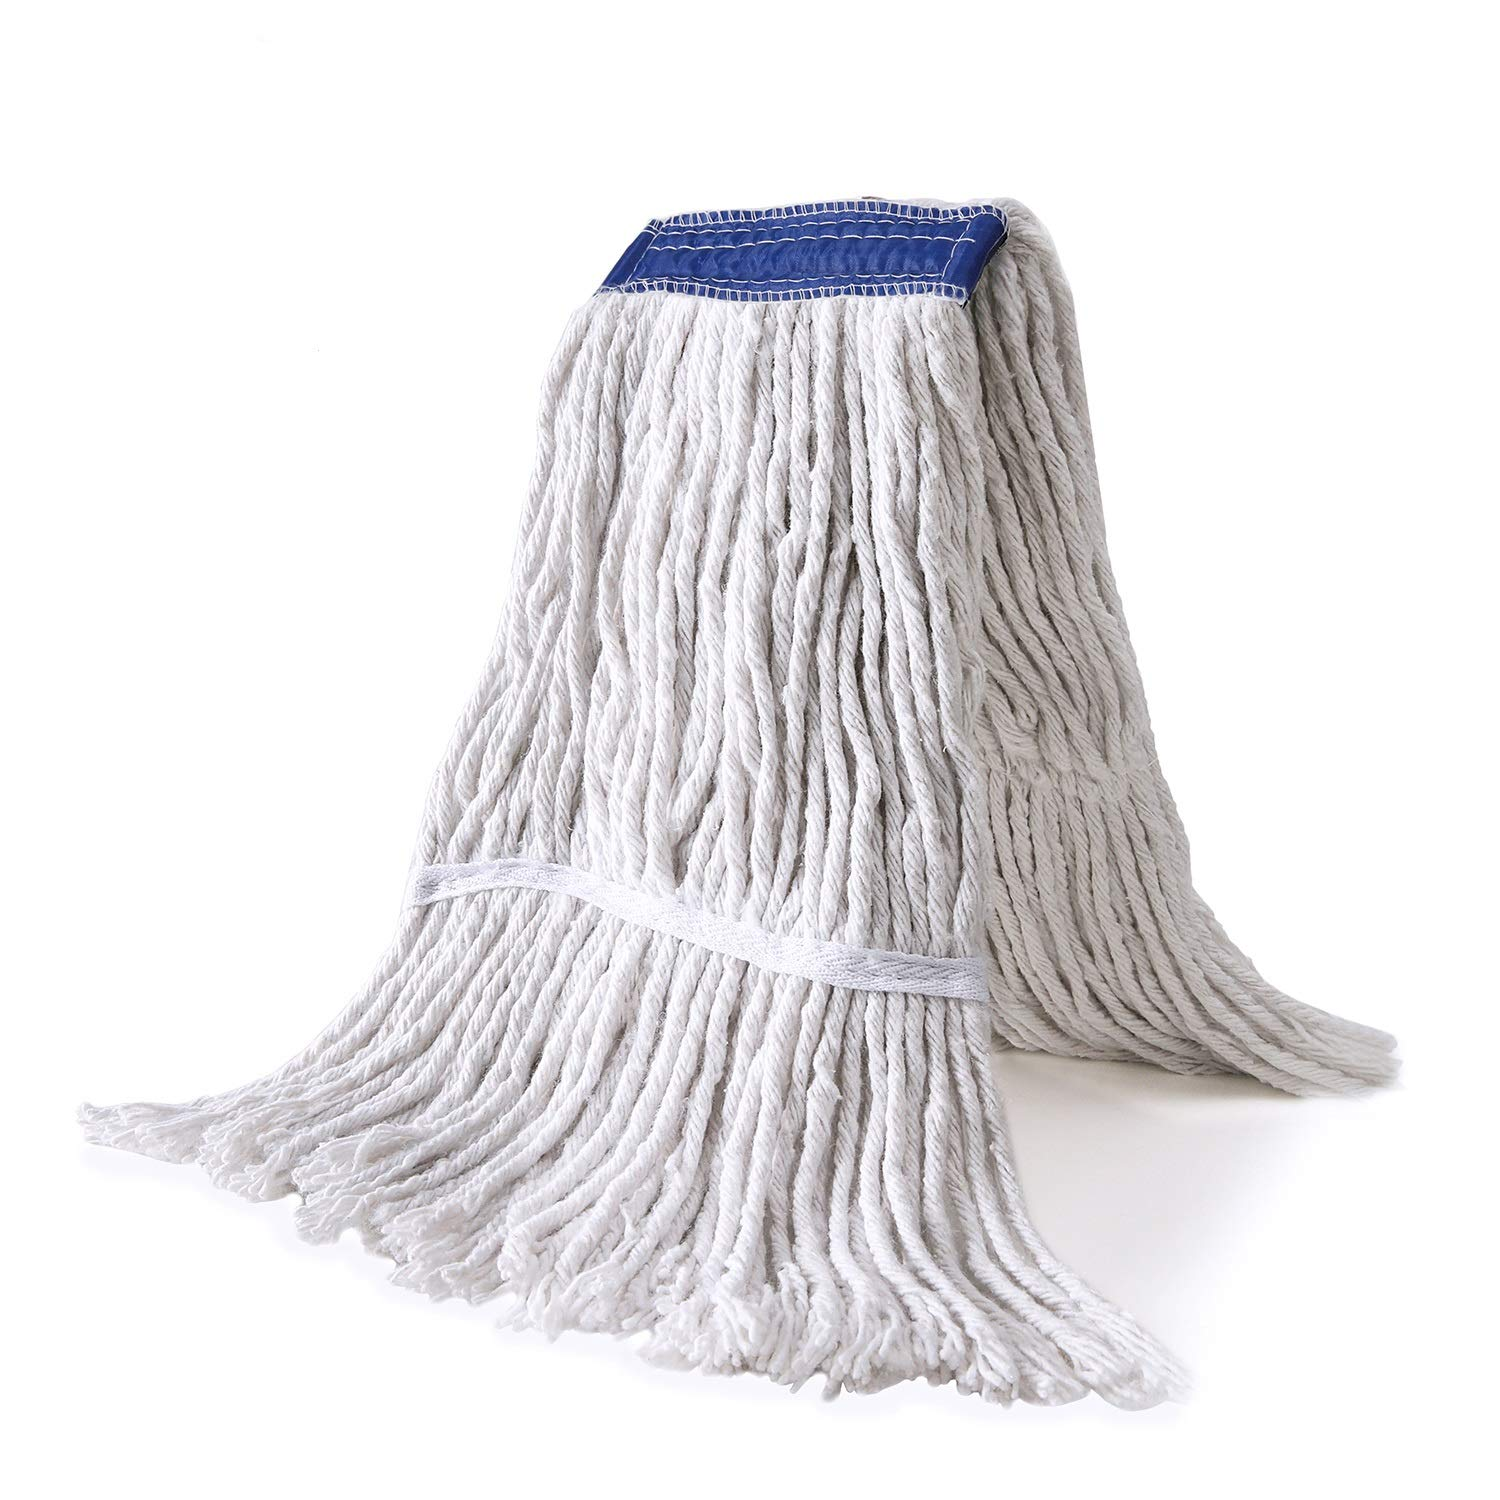 Dahey 3 Packs Heavy Duty Mop Heads Refills Cut-End String Wet Mop Head Replacement, Universal Headband for Home, Commercial, and Industrial Use, Cotton, White